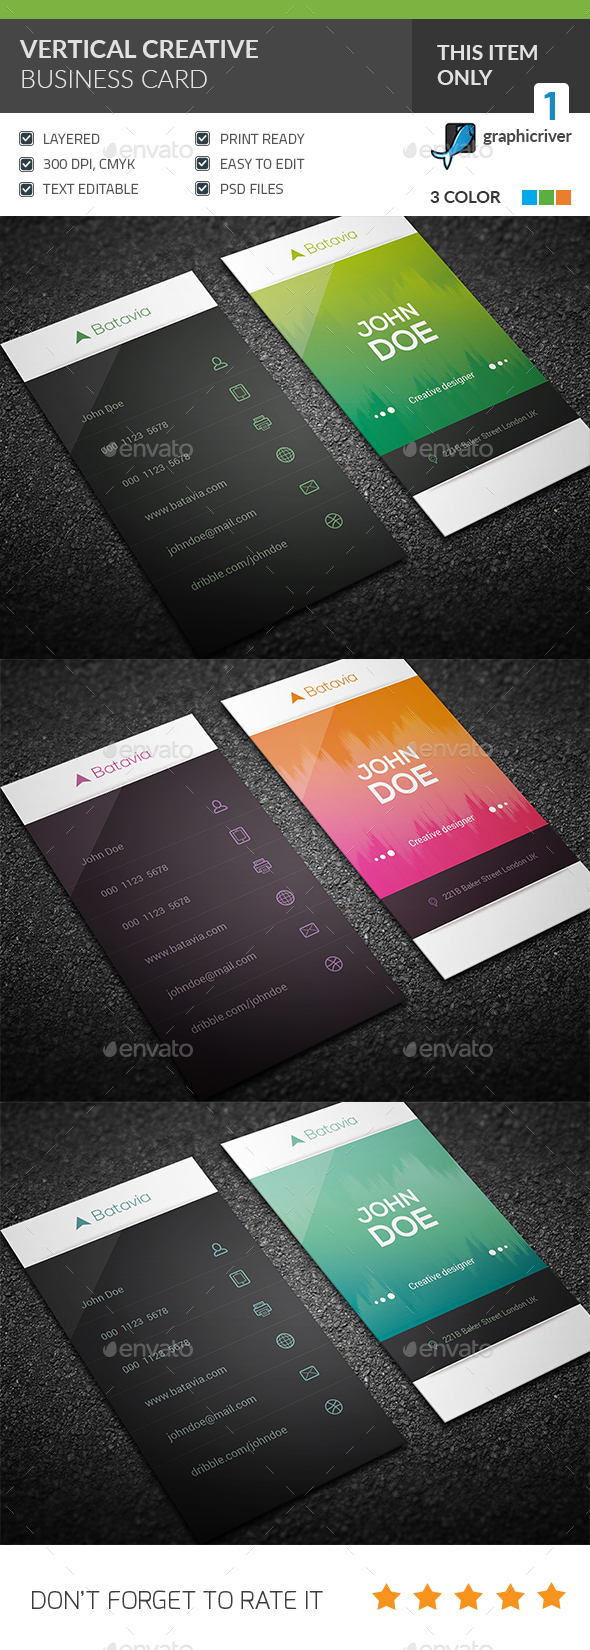 GraphicRiver Vertical Creative Business Card 20624448